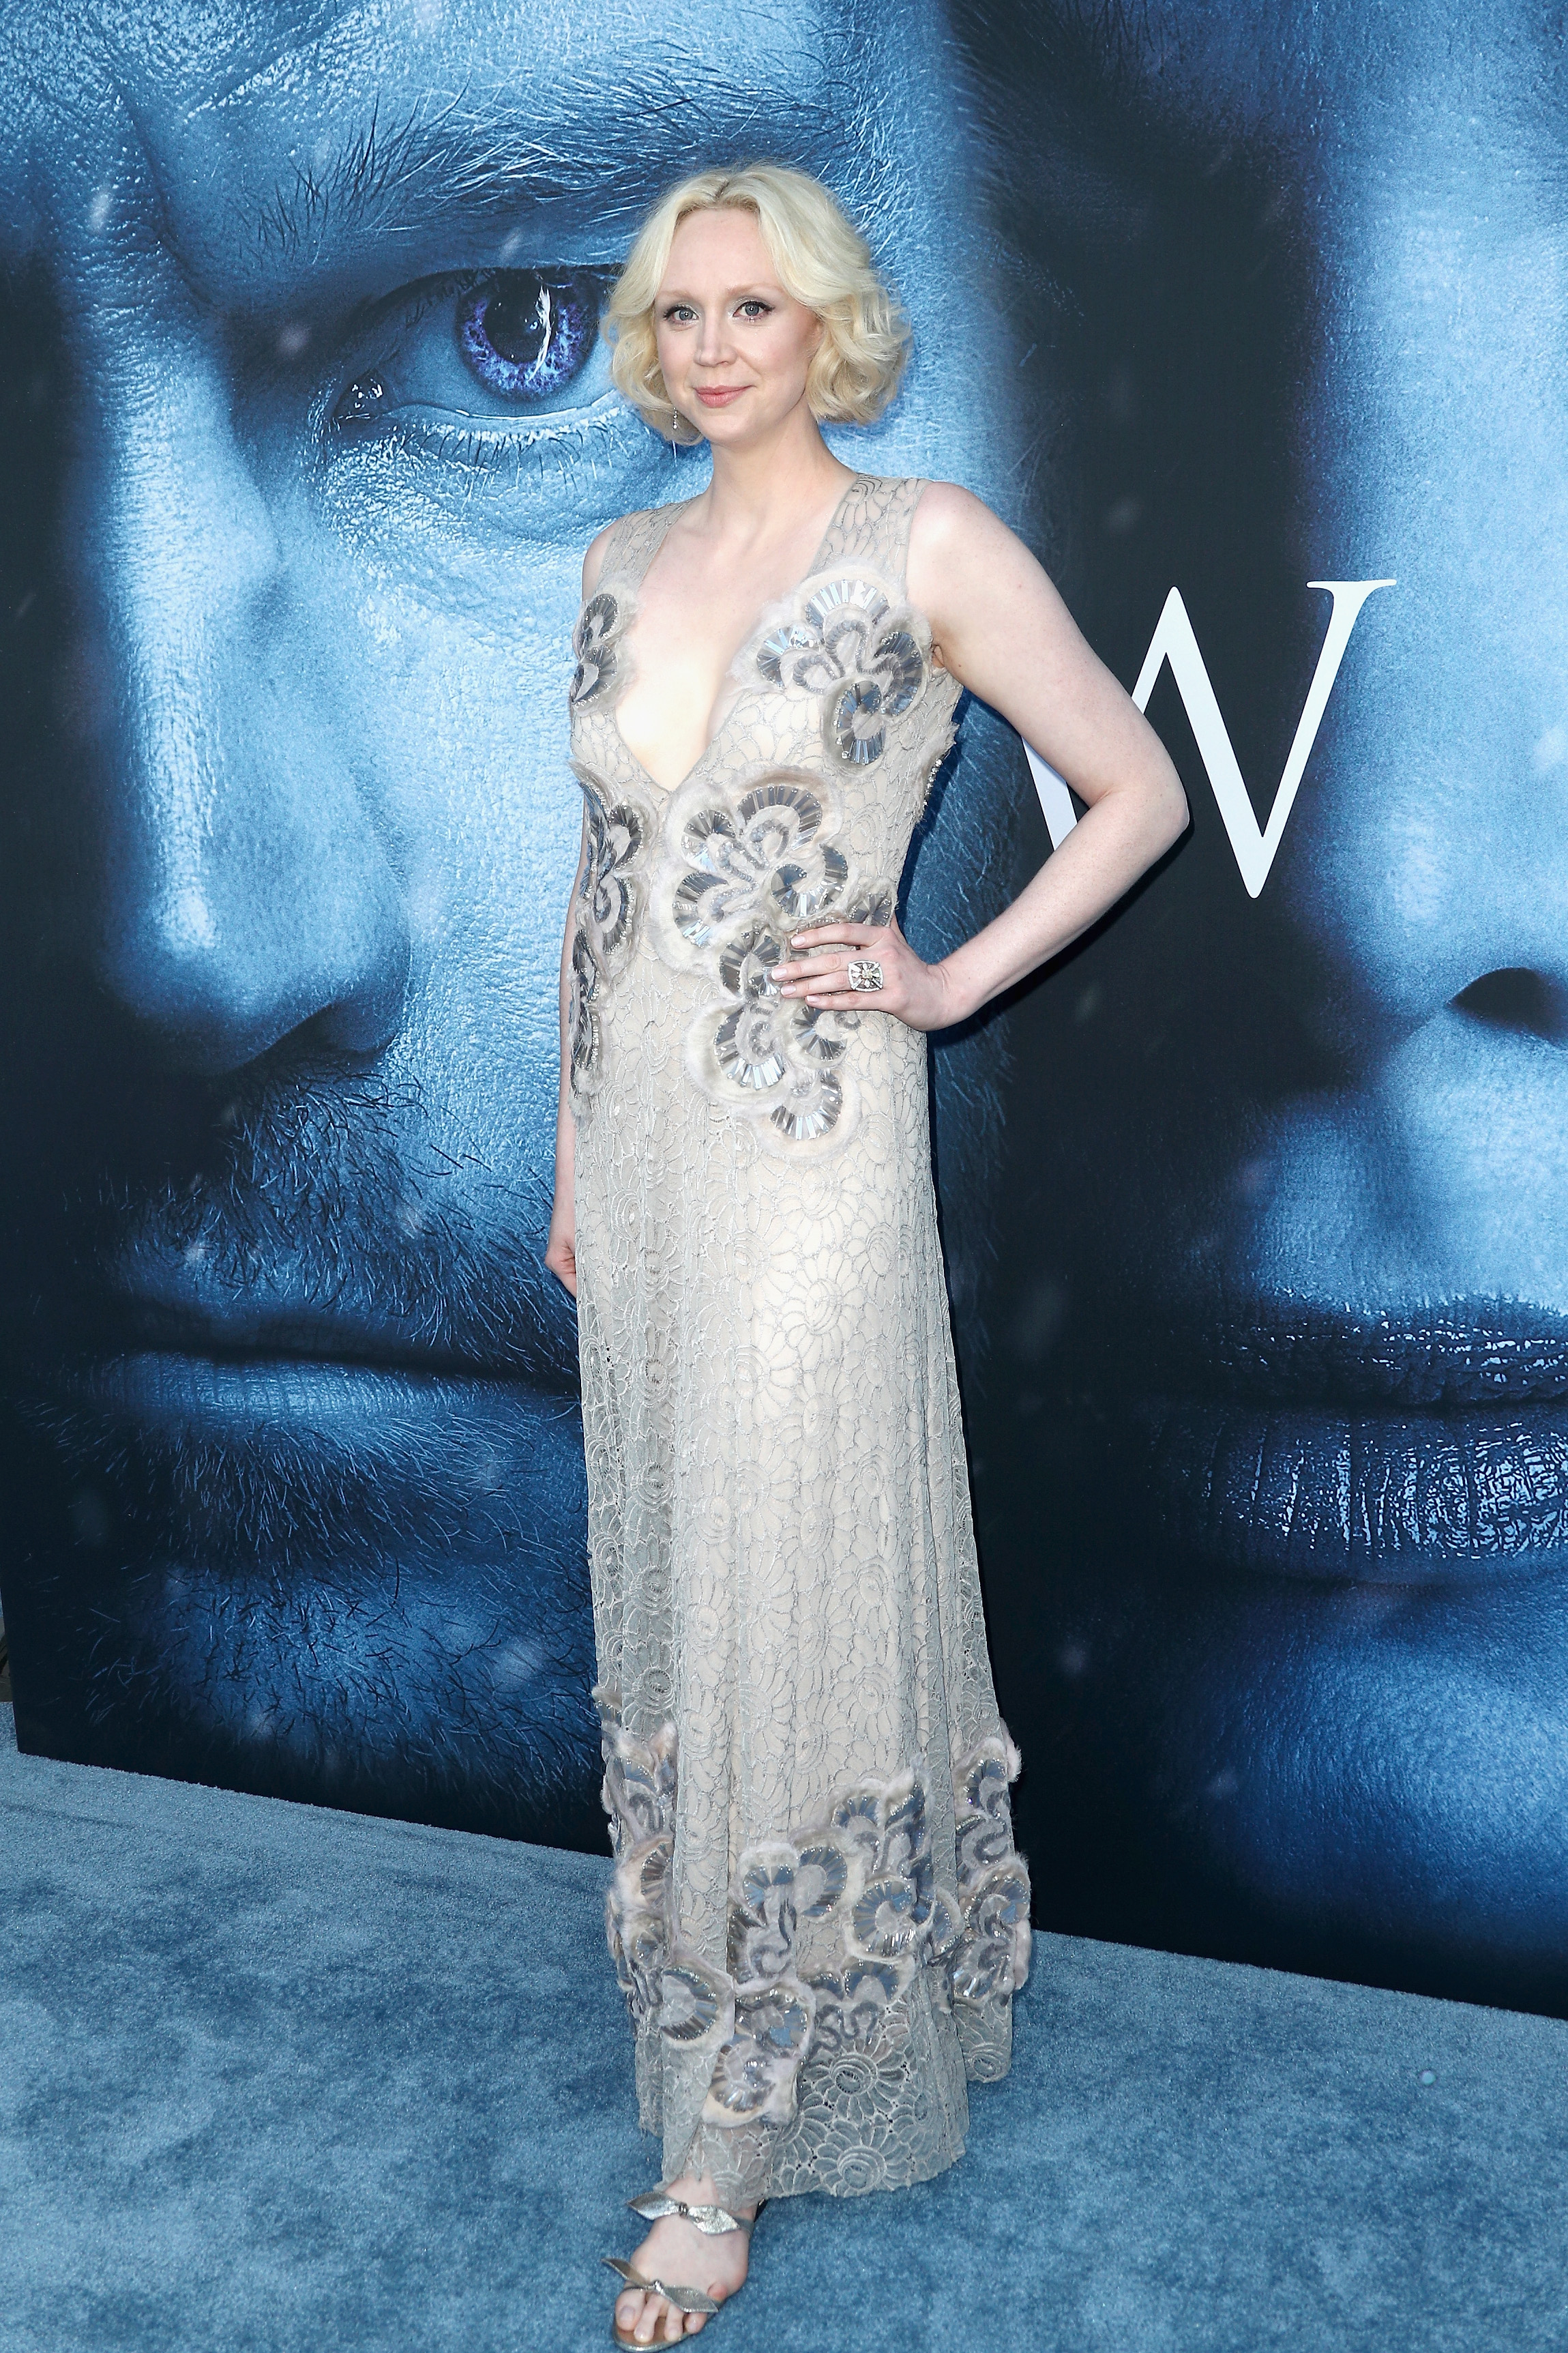 Premiere Of HBO's 'Game Of Thrones' Season 7 - Arrivals